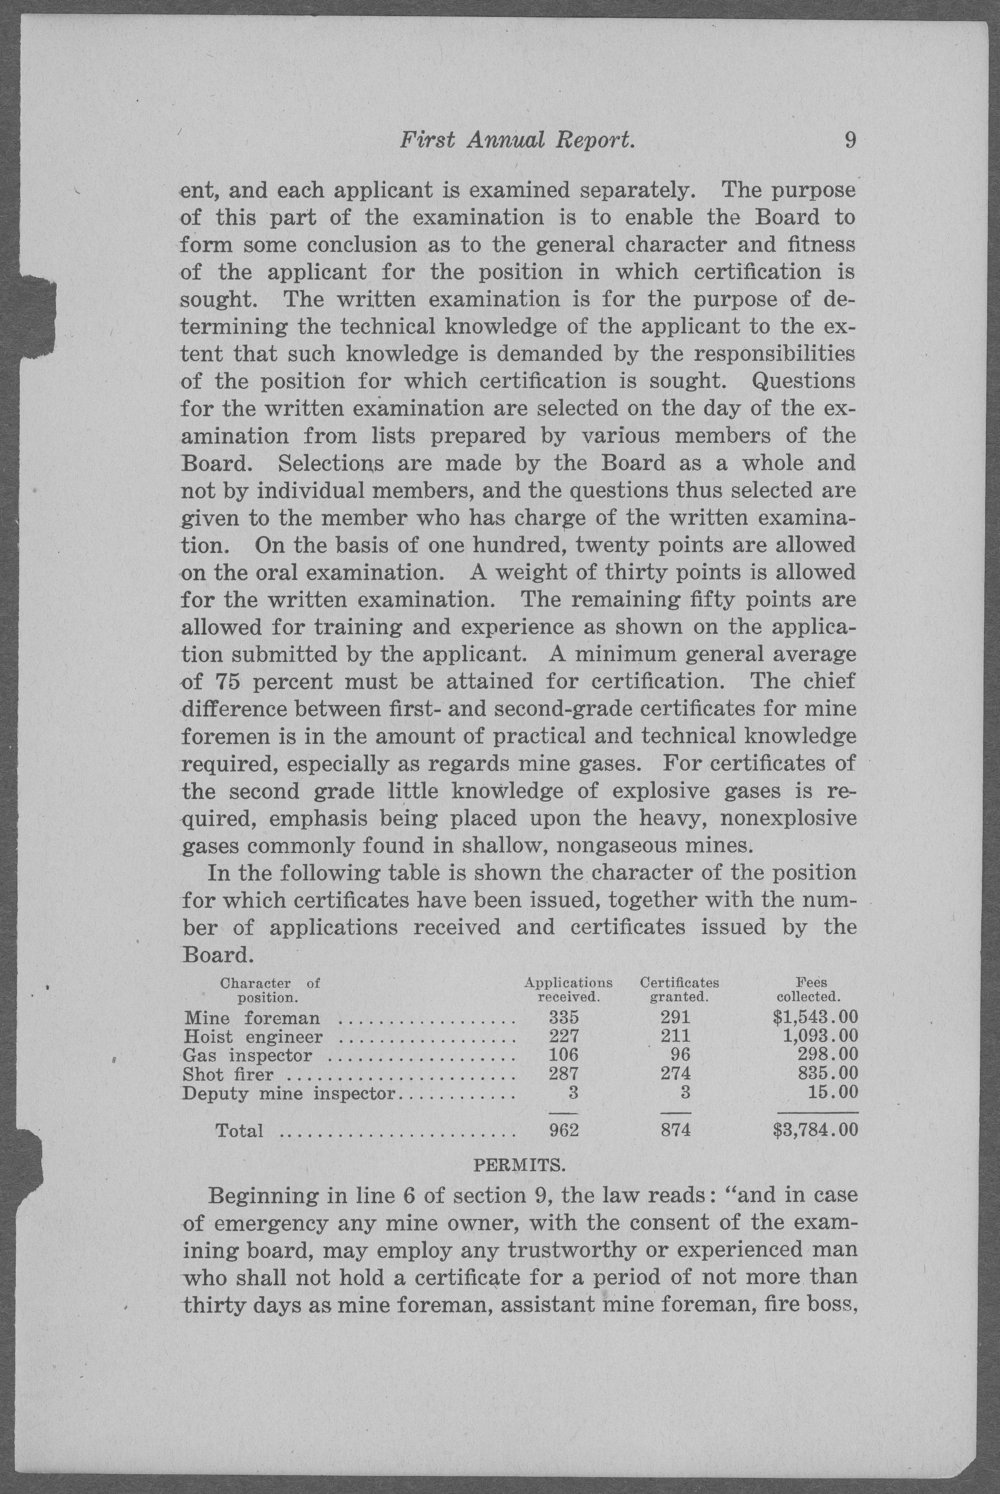 First Annual Report of the State Mining Examining Board of Kansas - 9